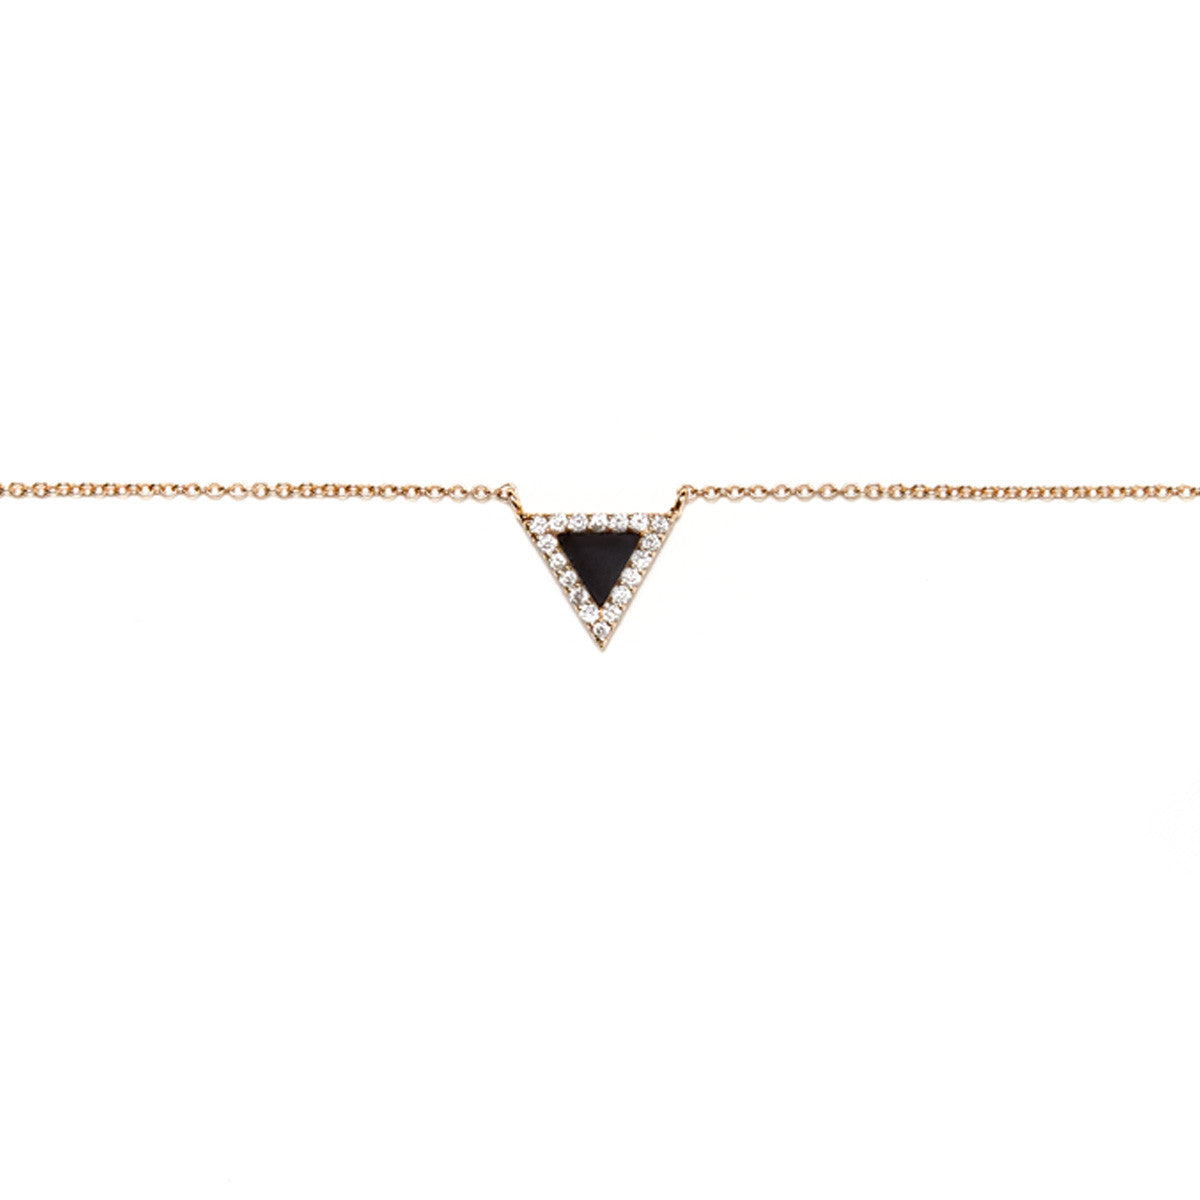 Diane Kordas Jewellery Onyx Triangle Evil Eye Necklace 18kt gold